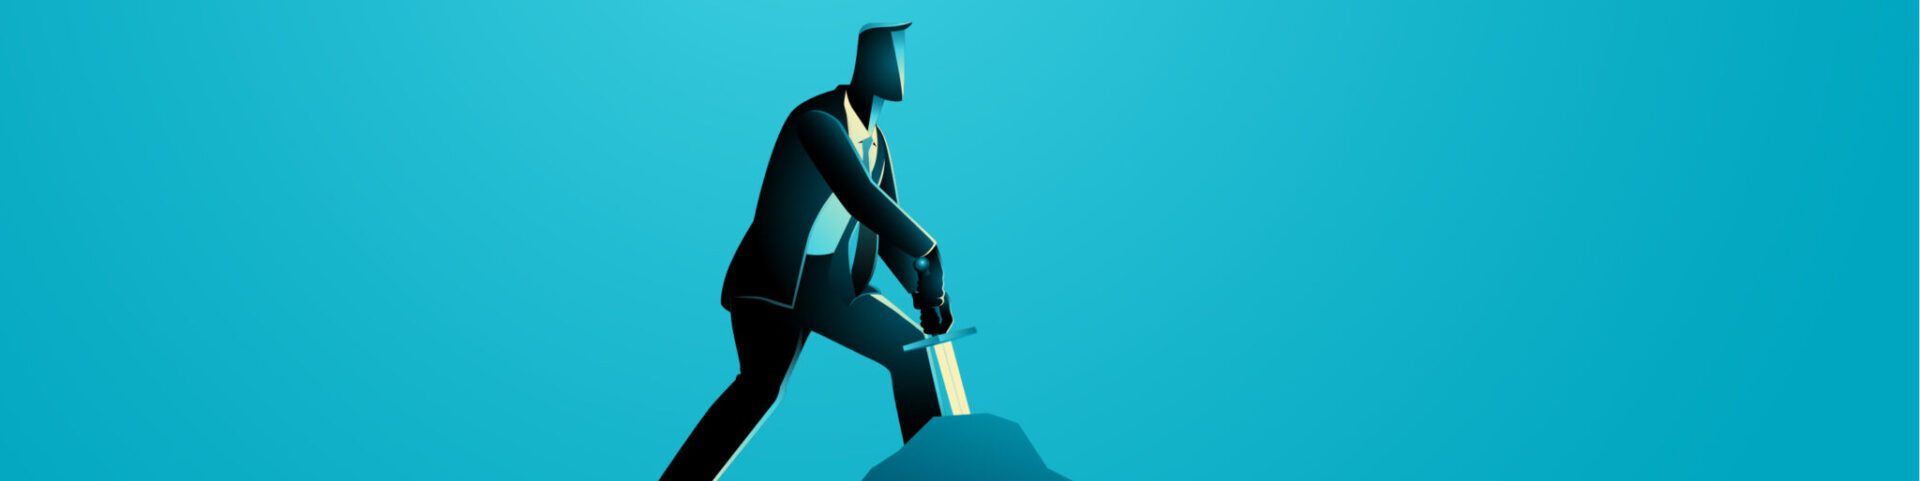 A businessman on a blue background braces himself to pull a sword from a stone, as in the Excalibur myth